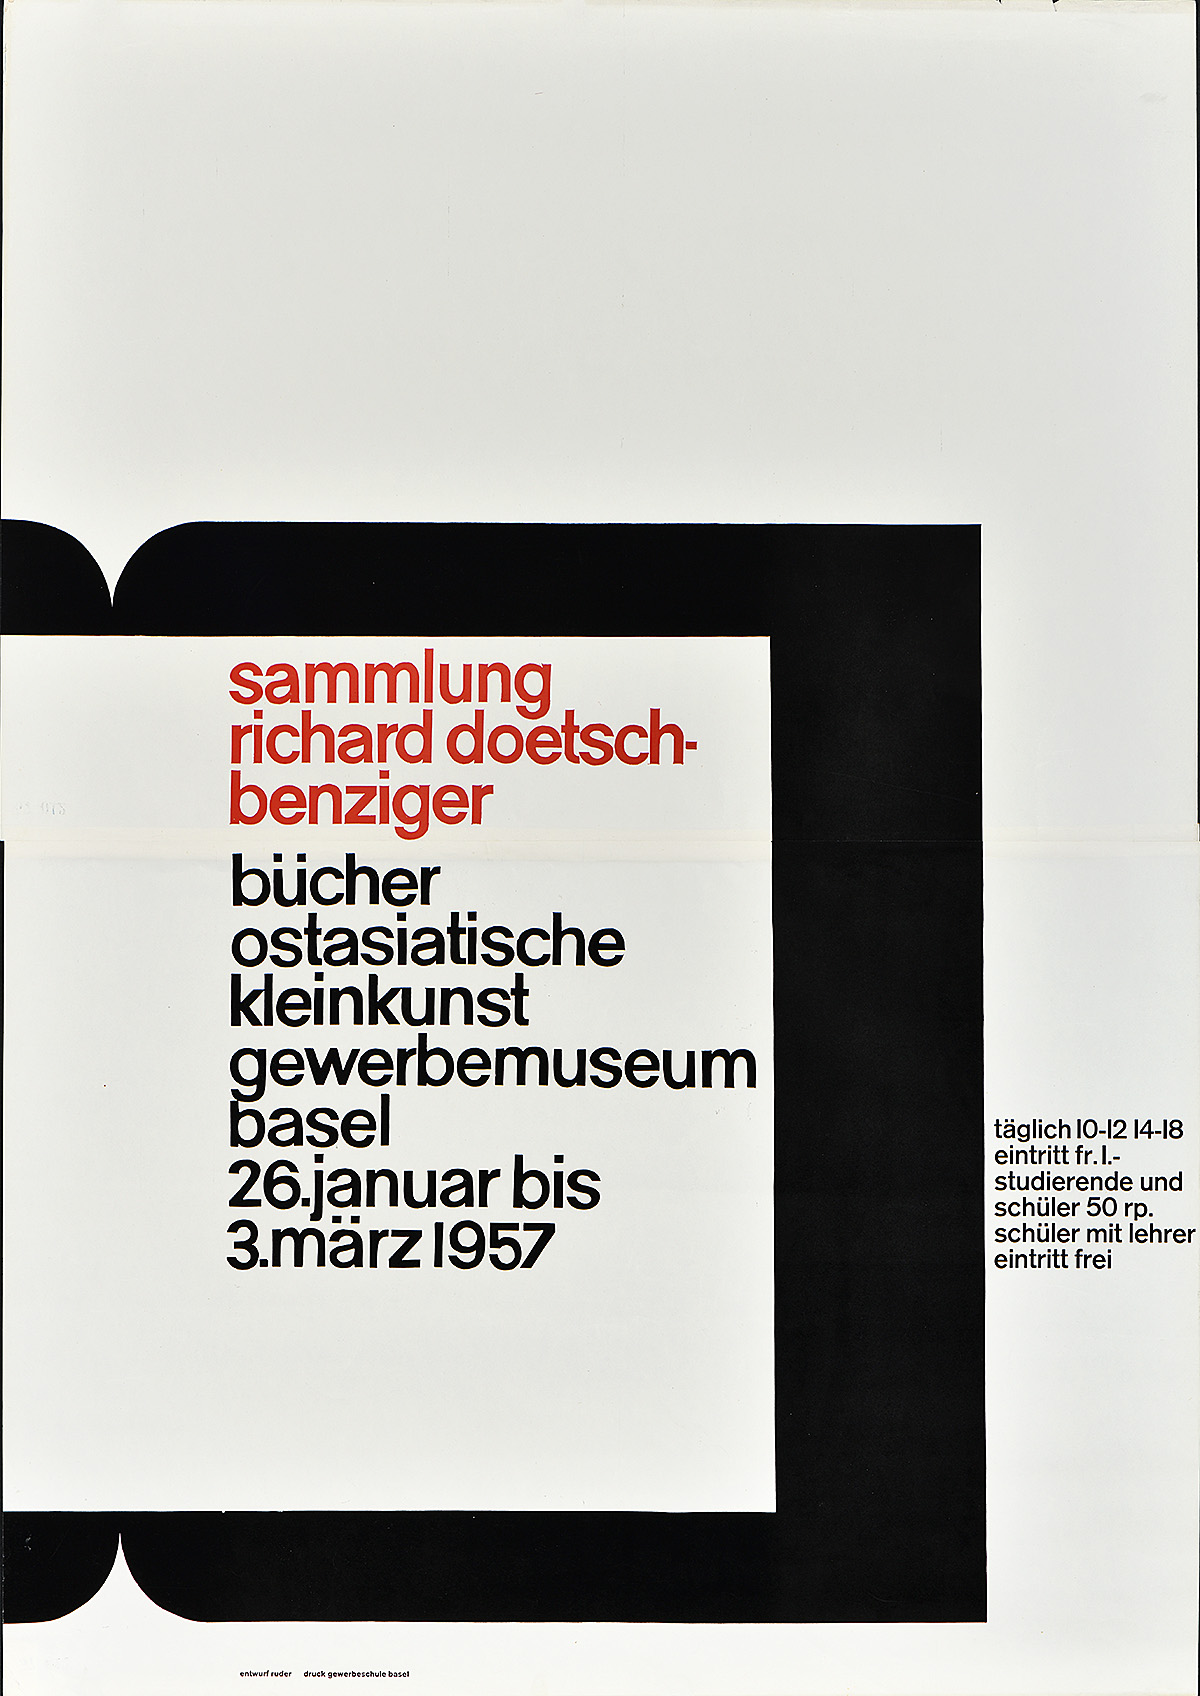 type-based poster for an event with red and black text inside a geometric shape